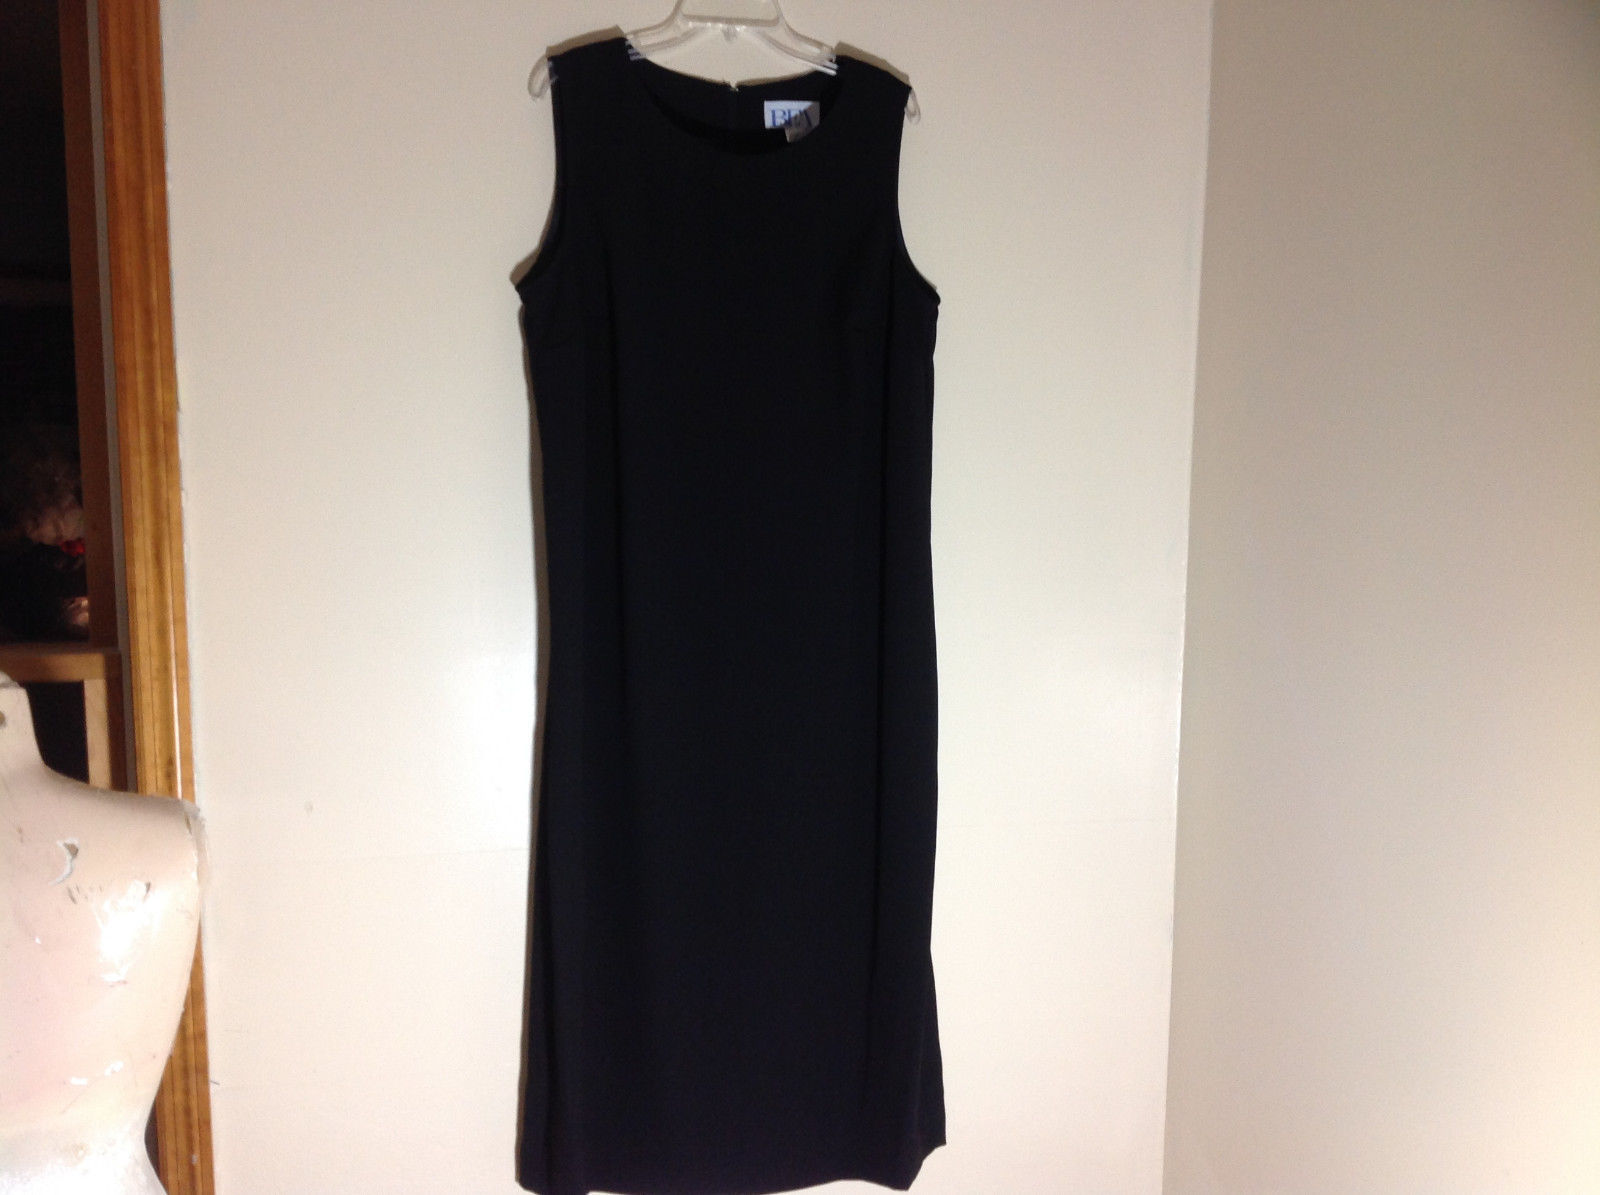 BFA Classics Sleeveless Black Full Length Dress Zipper at Back of Neck Size 18W